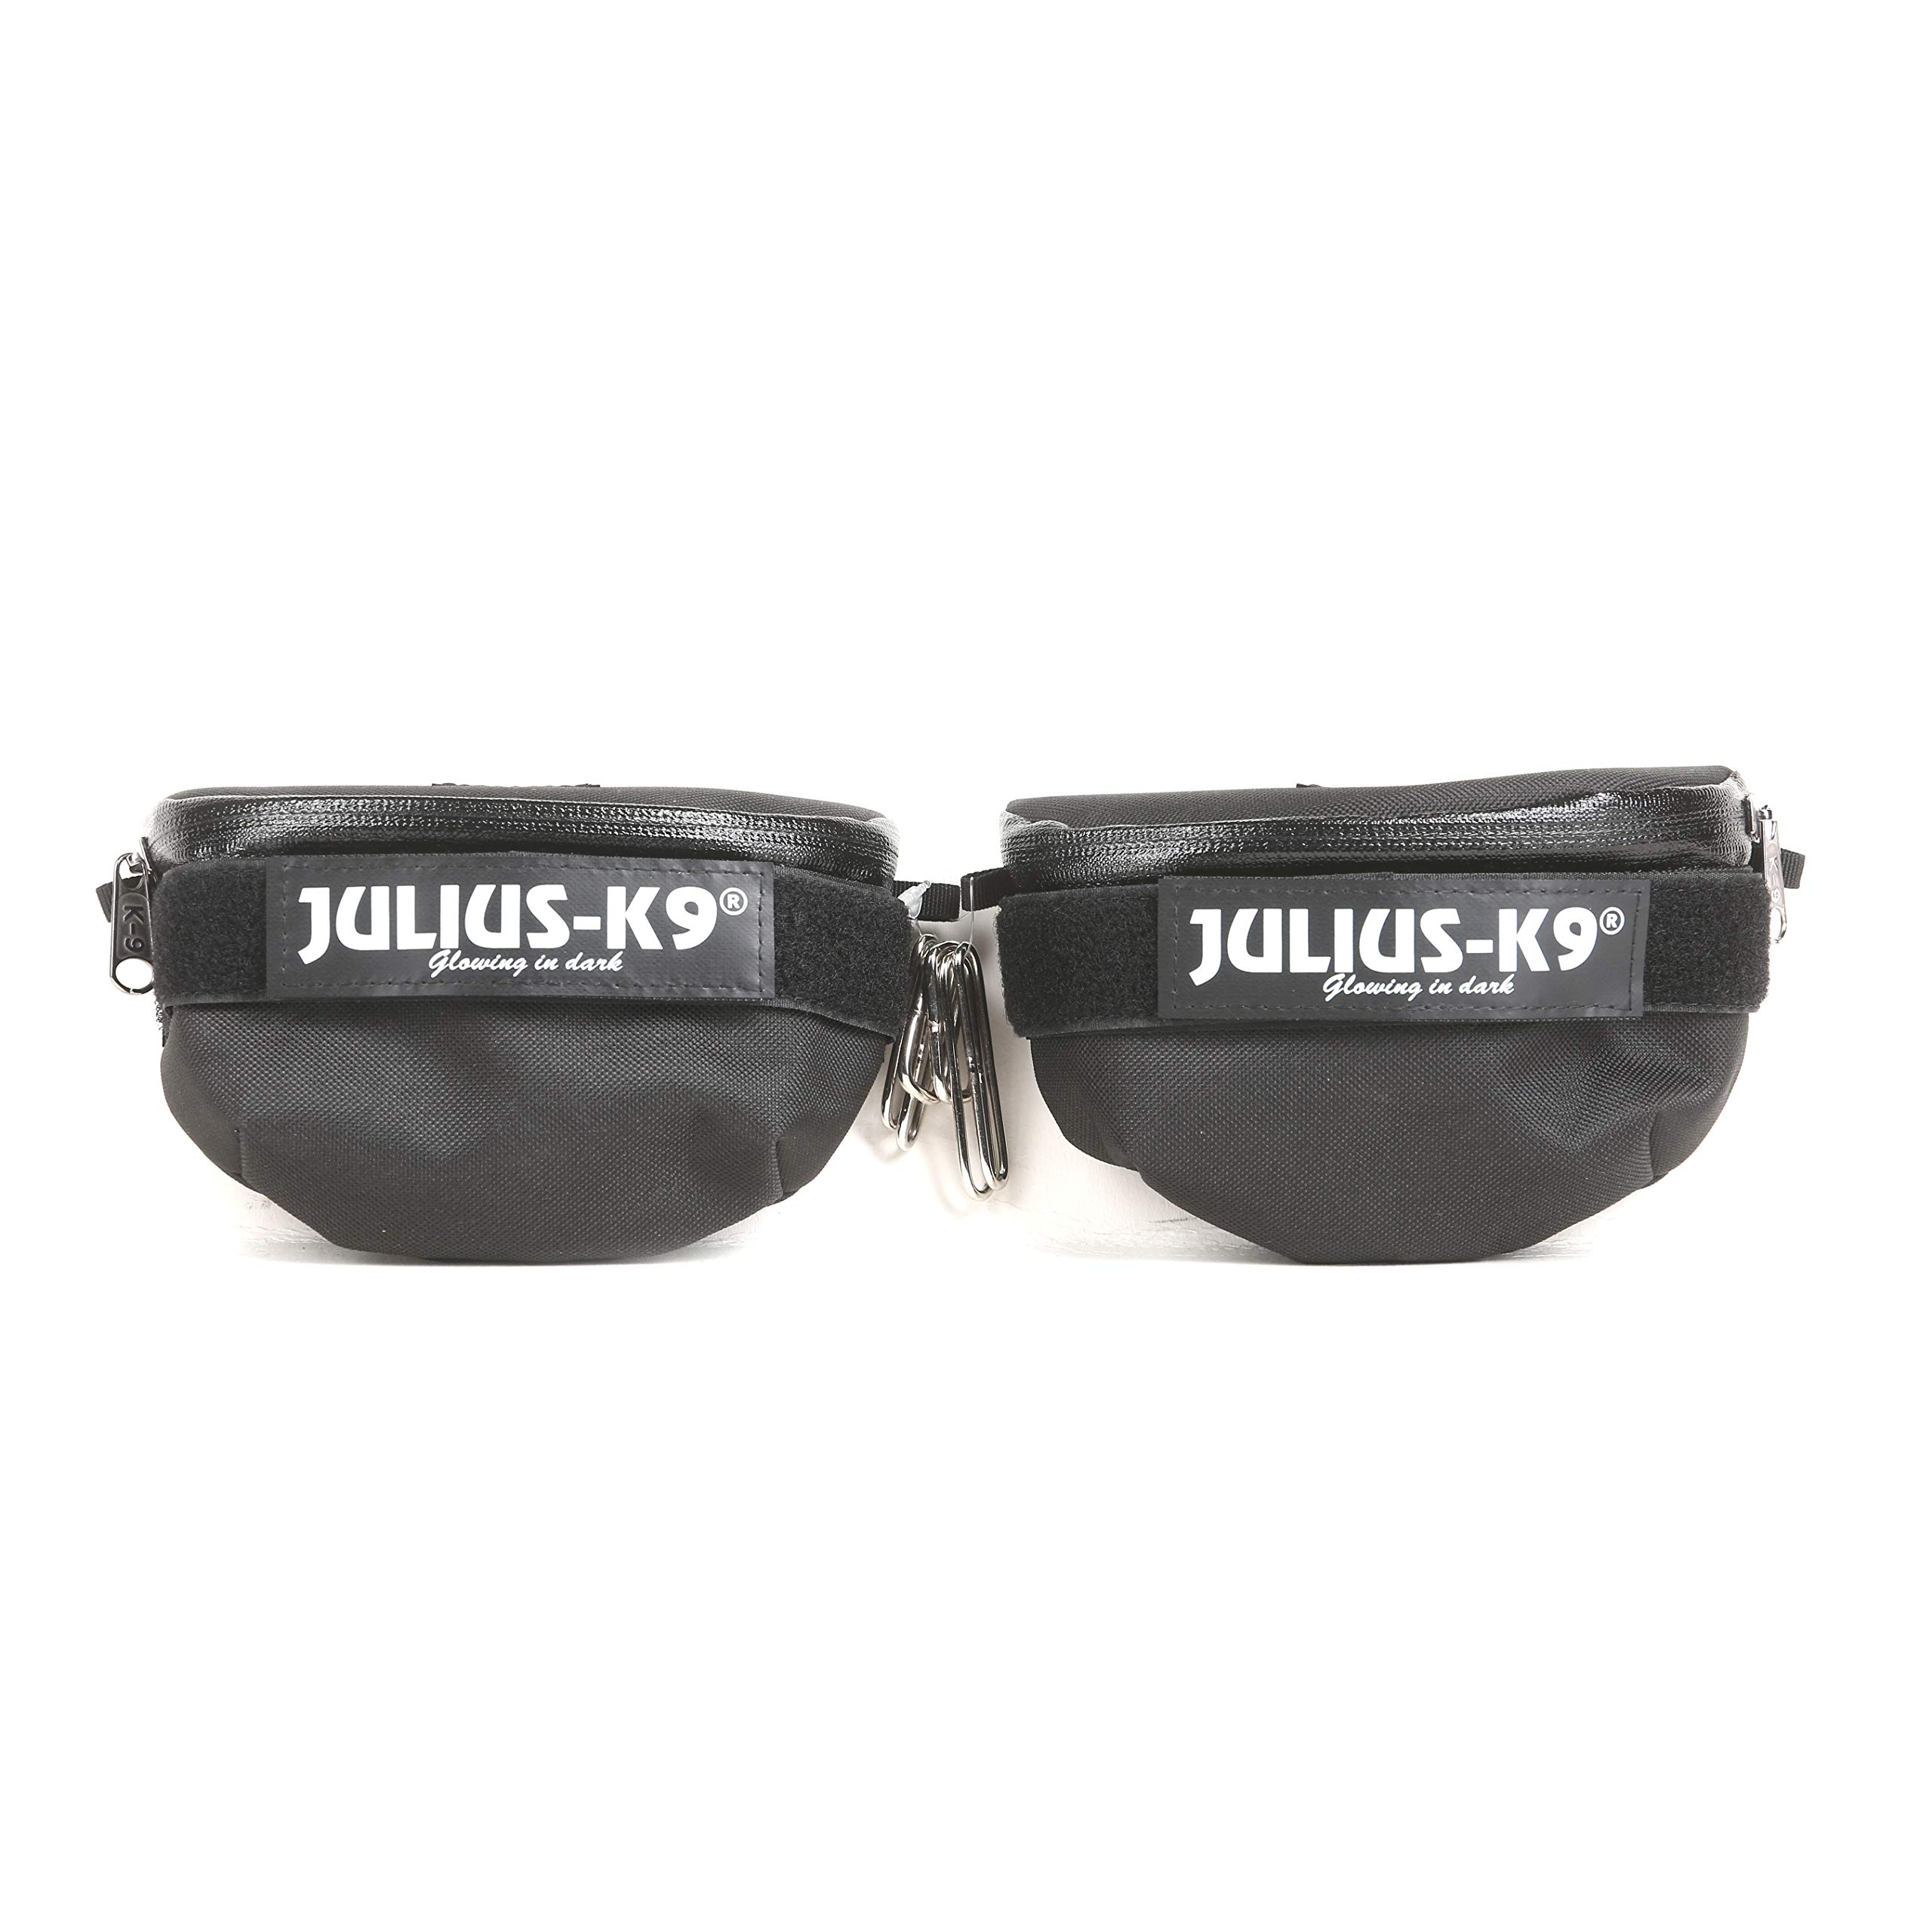 Julius-K9, IDC Universal Side Bags for Dogs, Harness Size: Baby 1 to Mini-Mini, Black